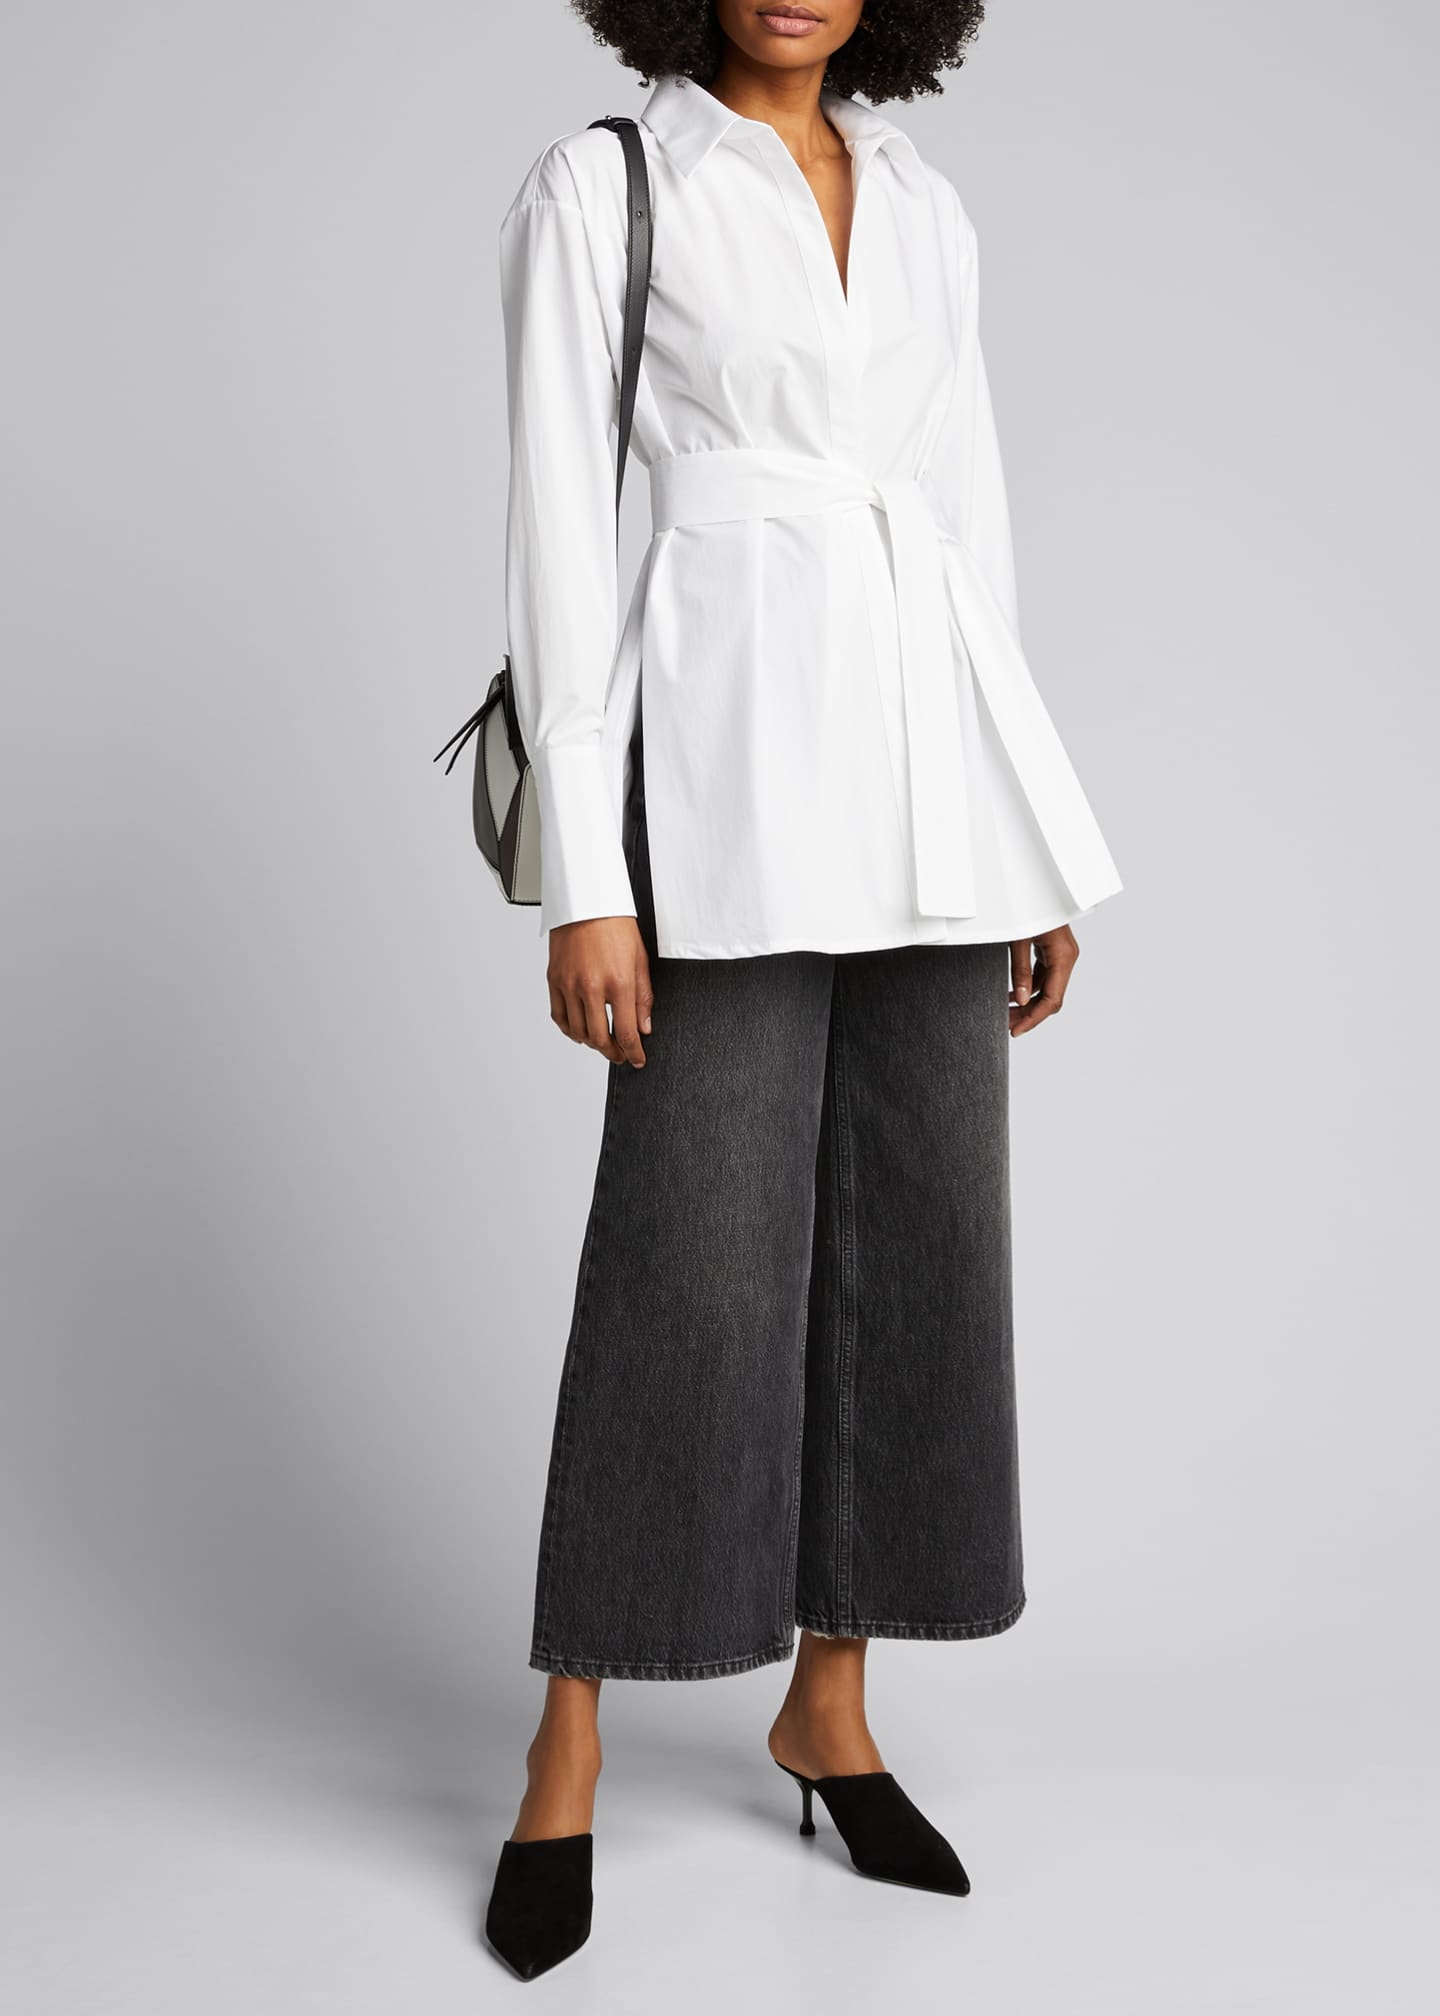 Image 1 of 5: Casablanca Belted Shirt